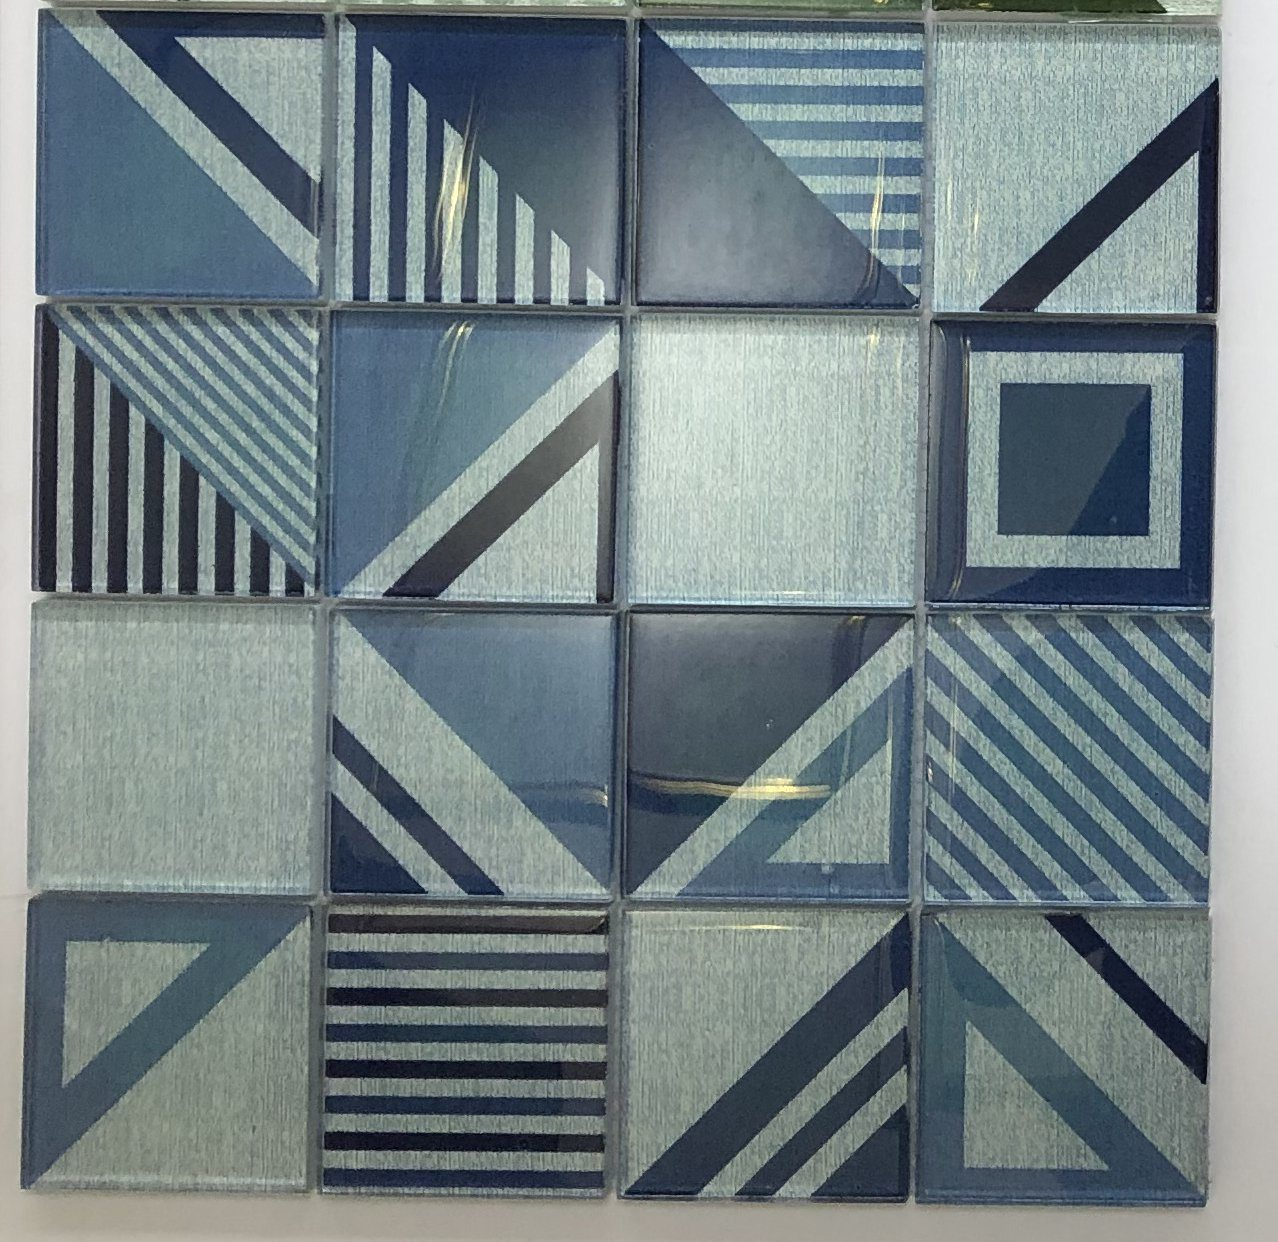 - China Iridescent Blue Glass Mosaic Tile Backsplash - China Mosaic, Glass Mosaic  Tile